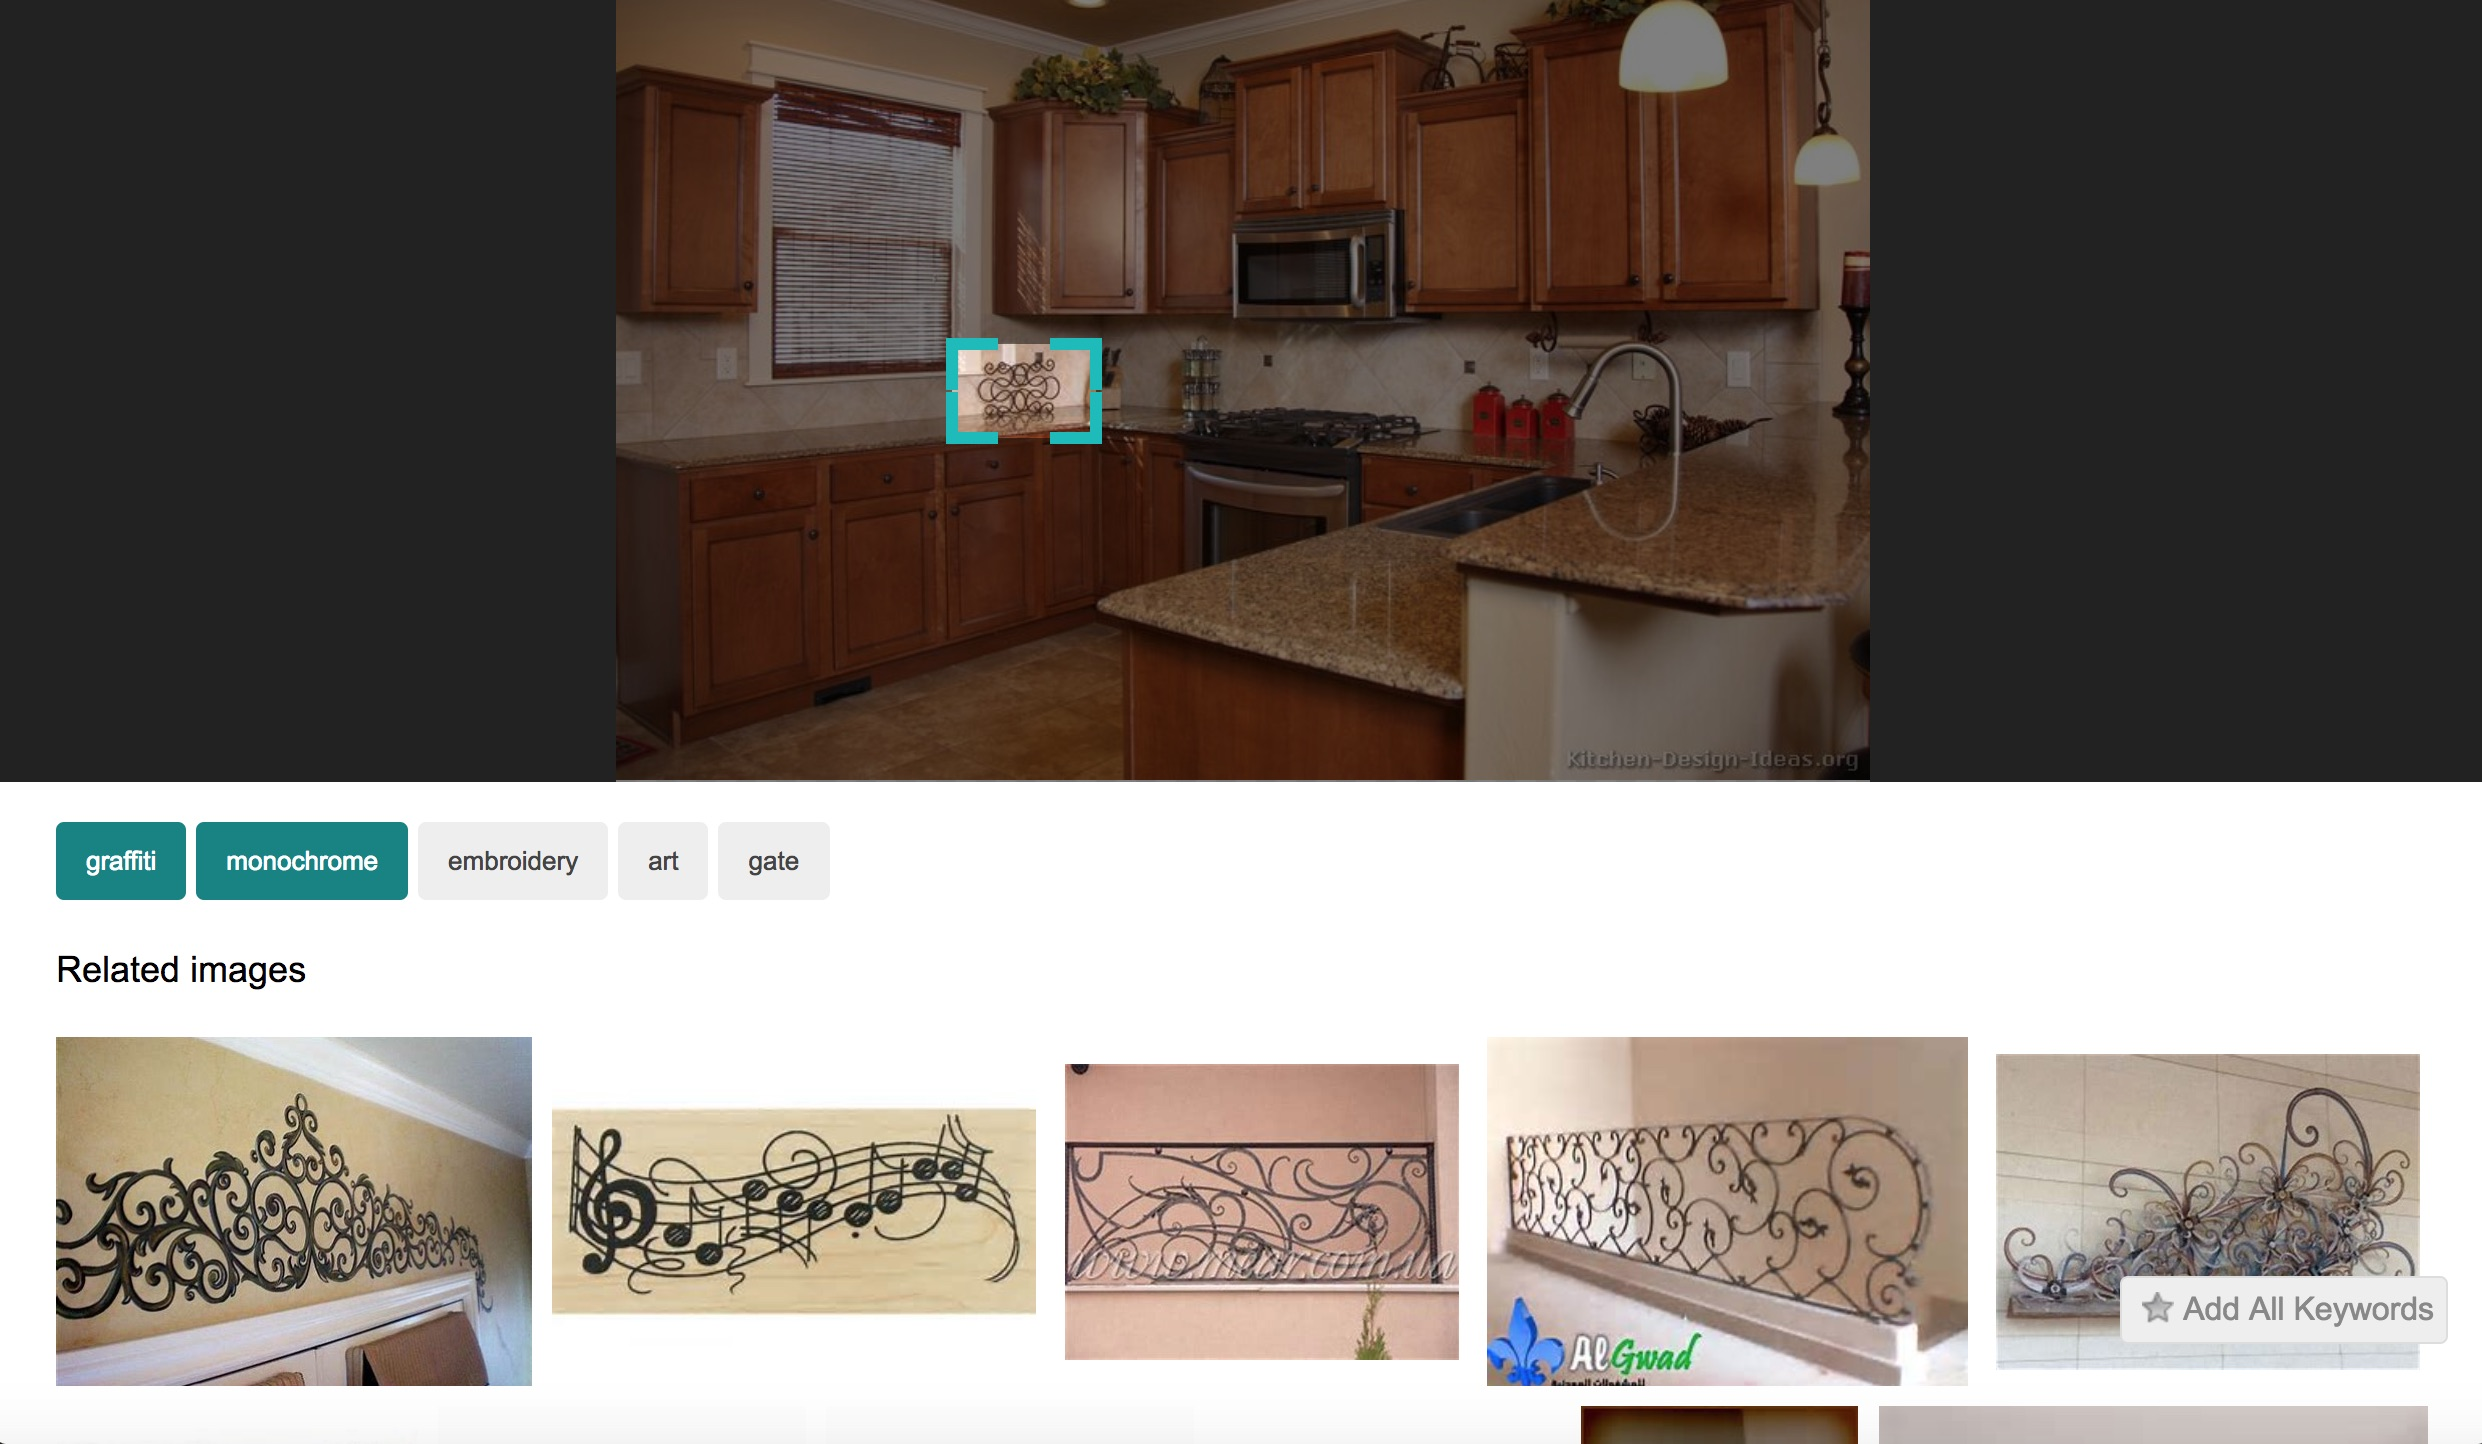 Bing visual search within images